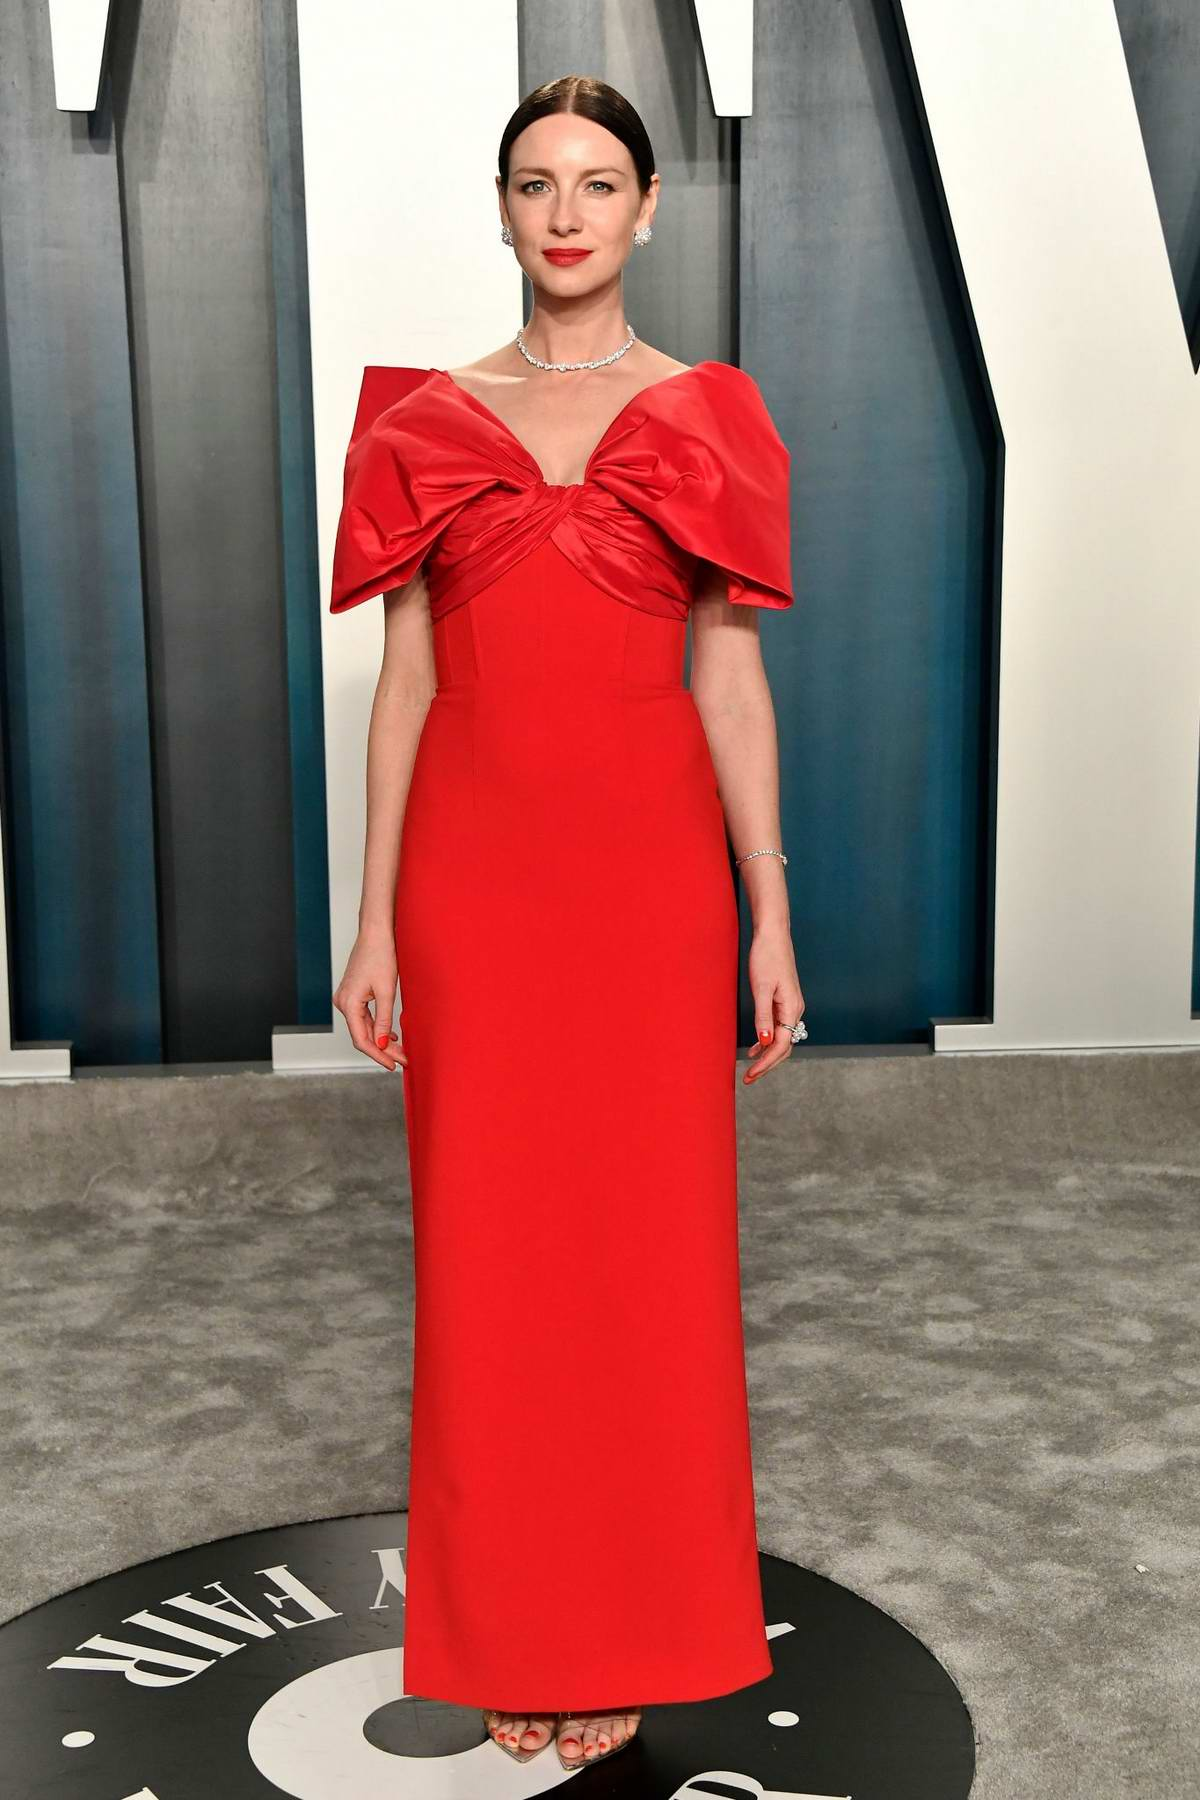 Caitriona Balfe attends the 2020 Vanity Fair Oscar Party at Wallis Annenberg Center for the Performing Arts in Los Angeles